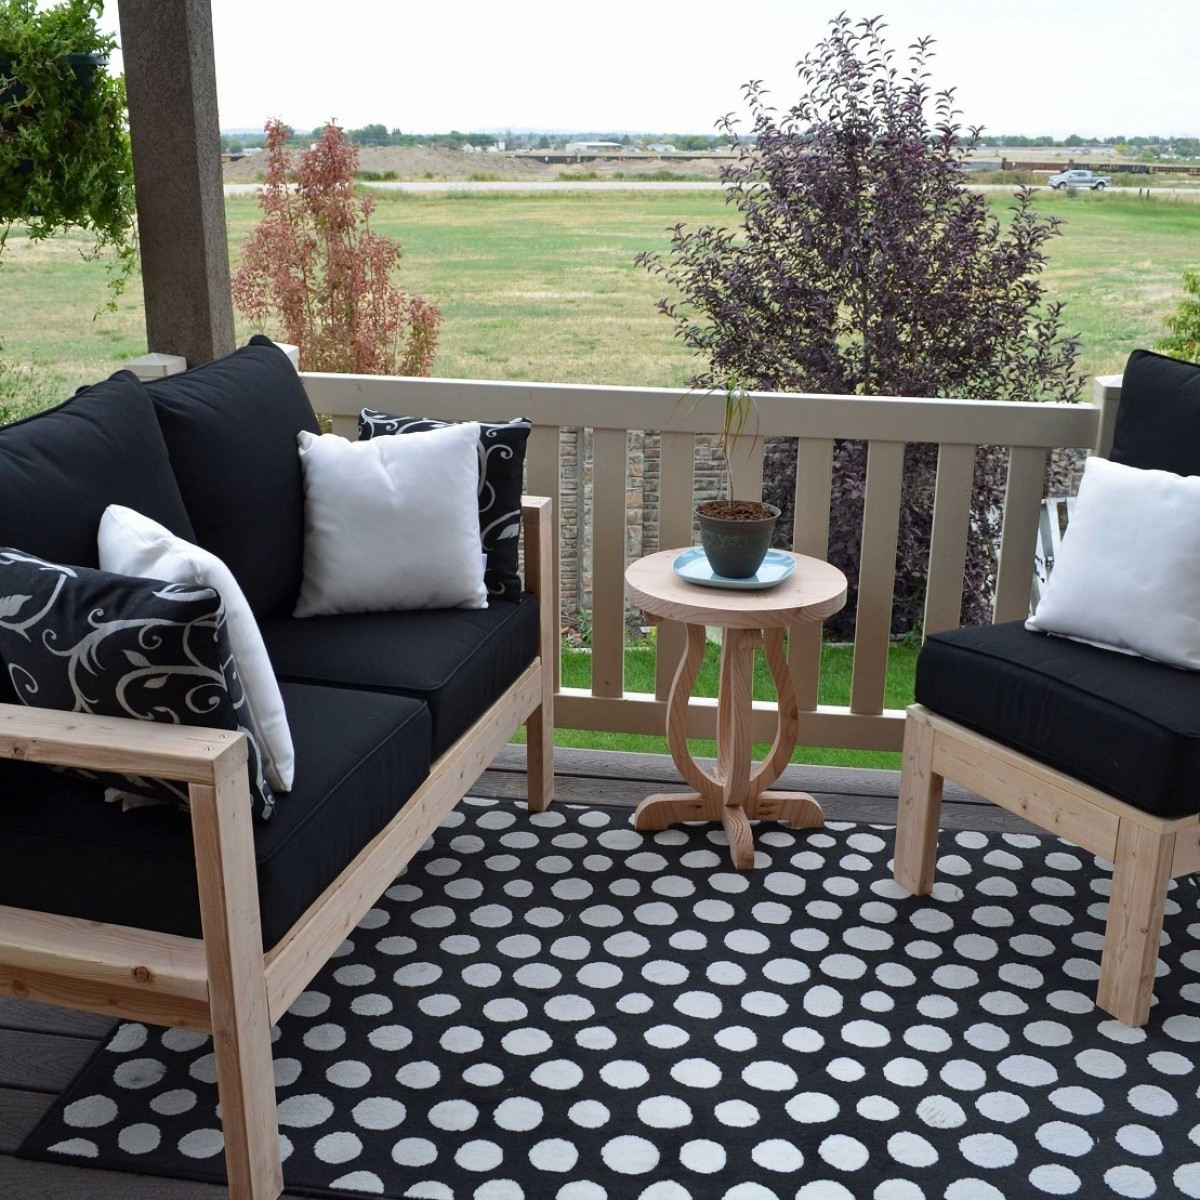 Well Known Patio Conversation Sets Under 200 With 56 Patio Sets Under 200, Extraordinary Patio Furniture Under $200 Up (View 14 of 15)